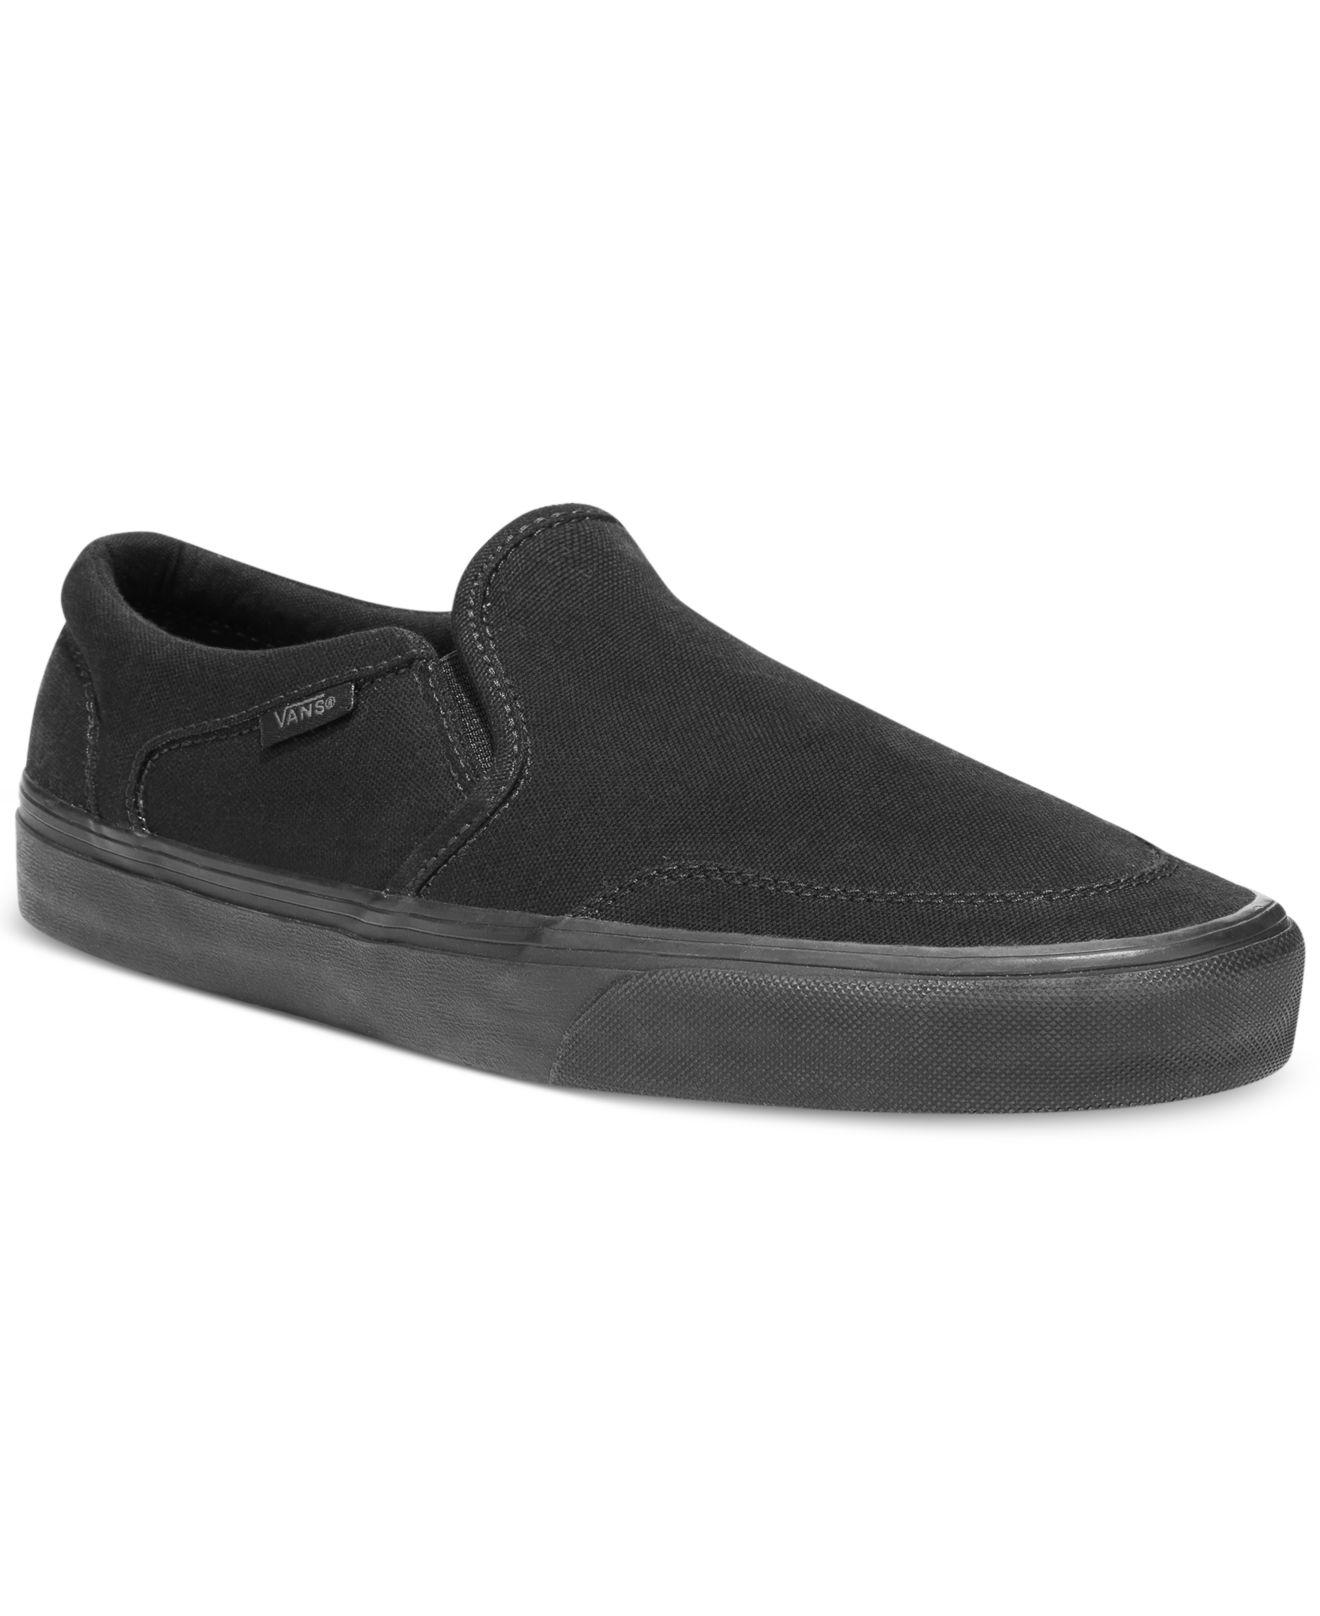 67de3f9fb7 Lyst - Vans Shoes